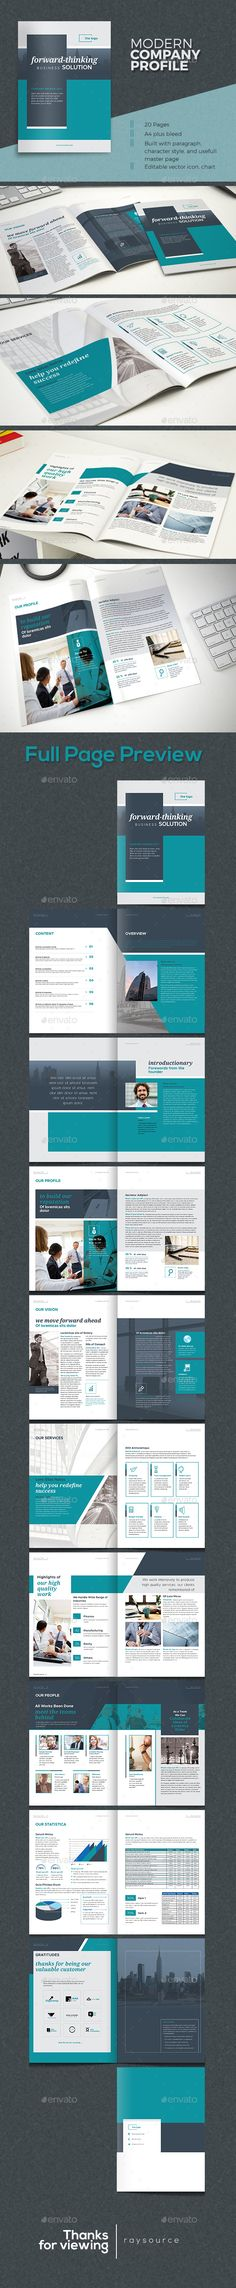 Company Profile Template u2026 Pinteresu2026 - professional business profile template